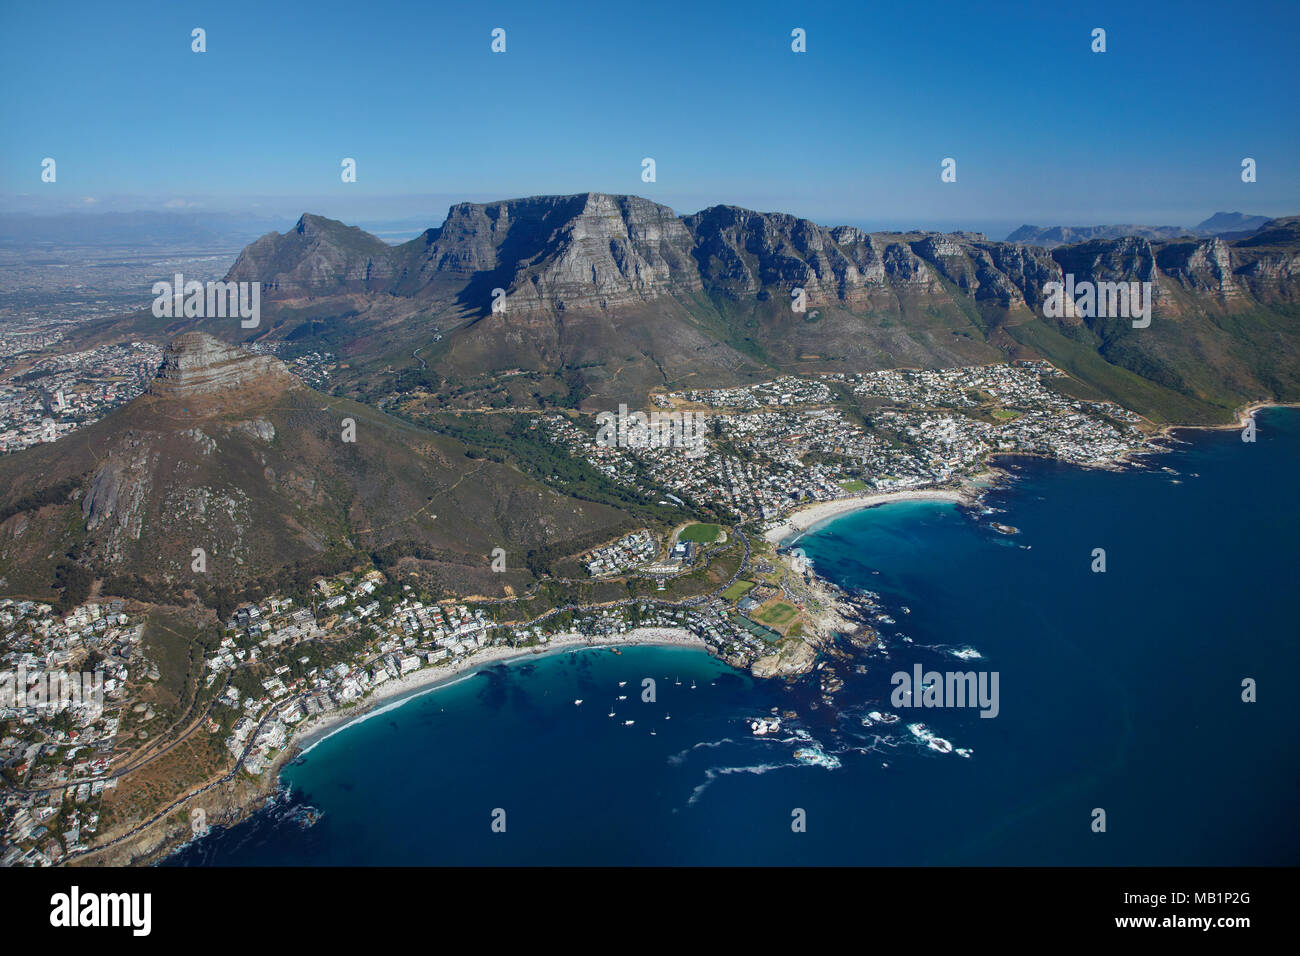 Clifton Beach (left) and Camps Bay (right), Table Mountain, and The Twelve Apostles, Cape Town, South Africa - aerial - Stock Image